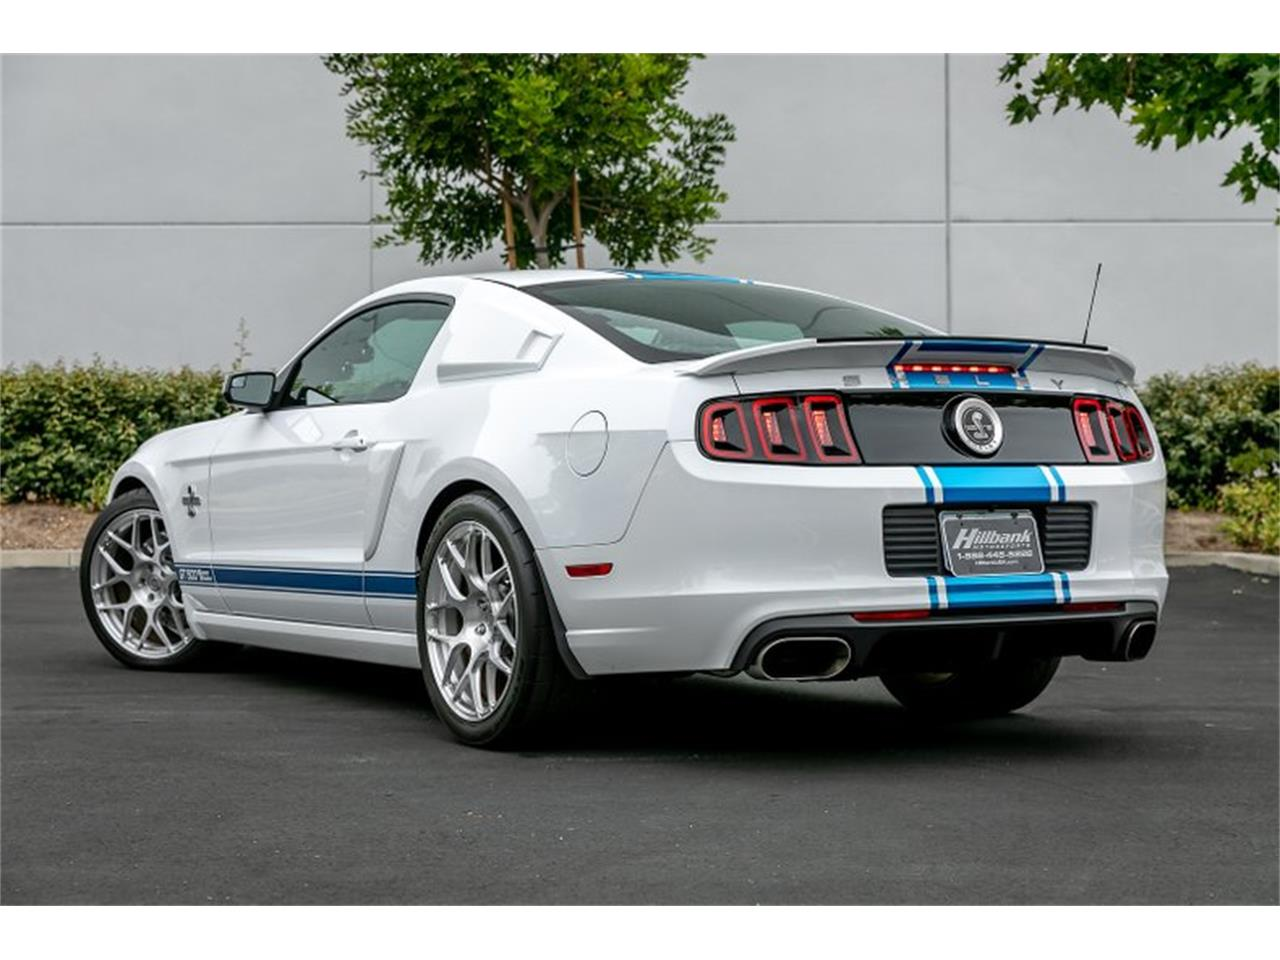 Large Picture of 2014 Mustang Shelby GT500 Super Snake - $109,950.00 Offered by Hillbank Motorsports - QB1K